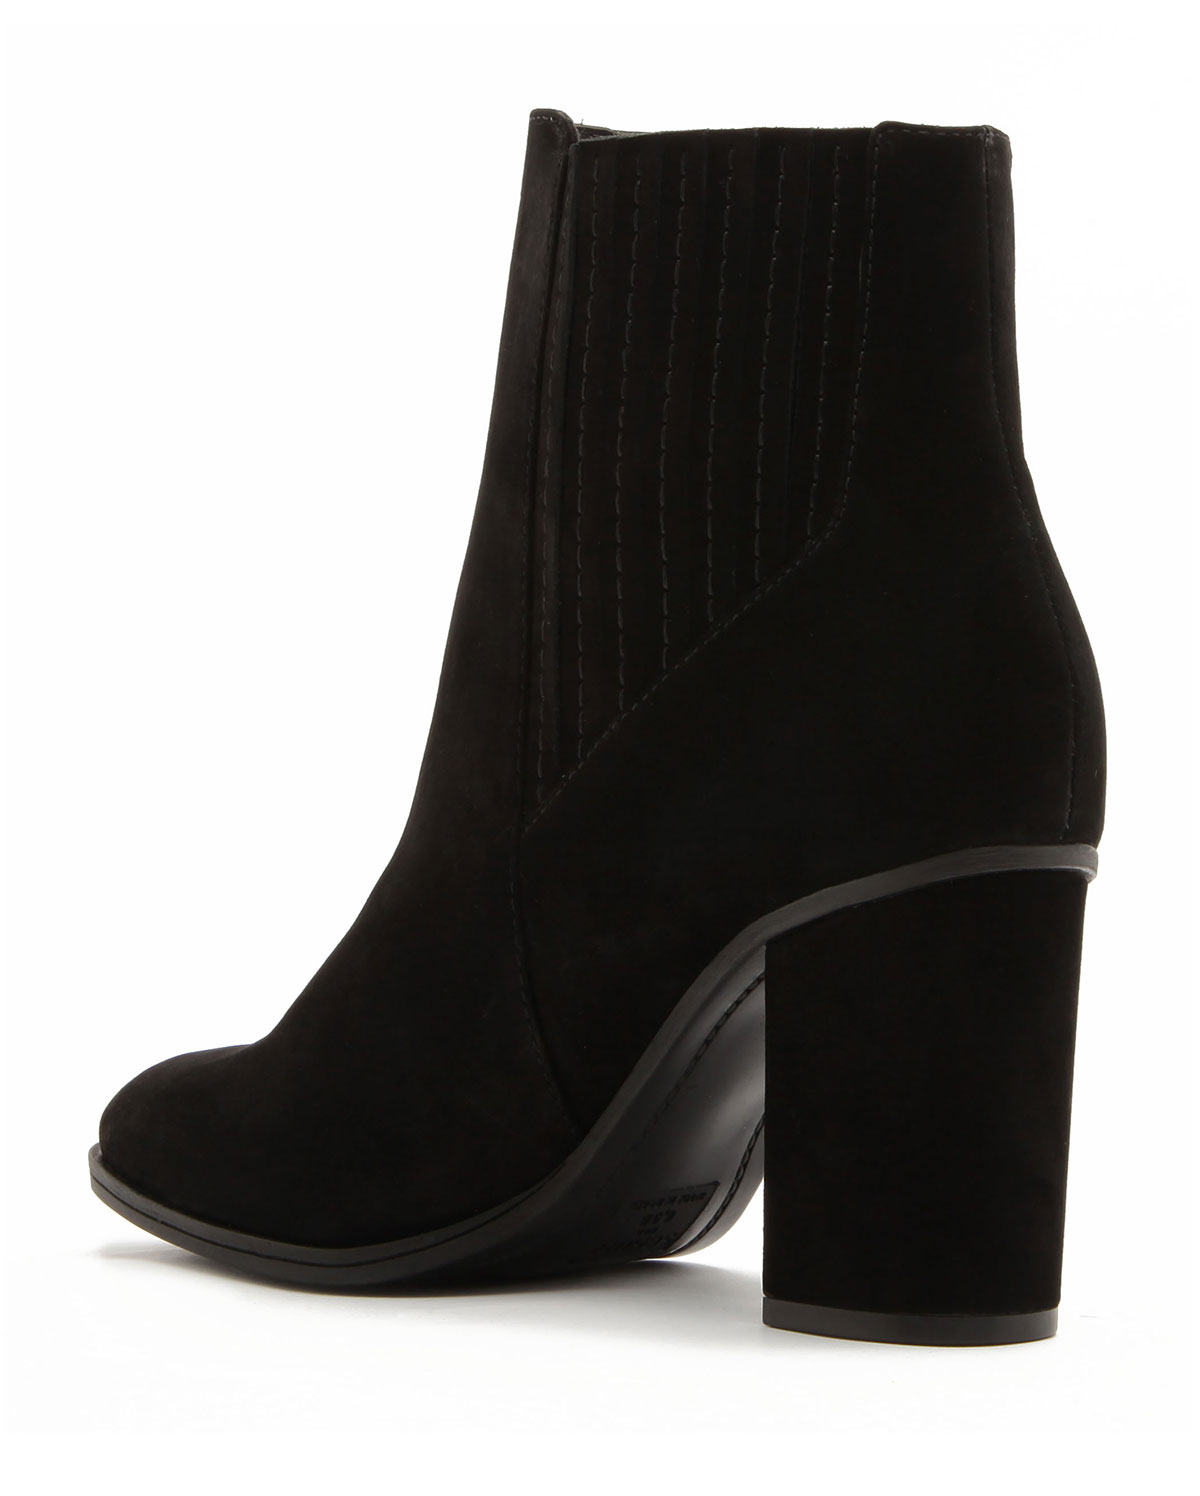 Fabricia Suede Chelsea Boots by Schutz